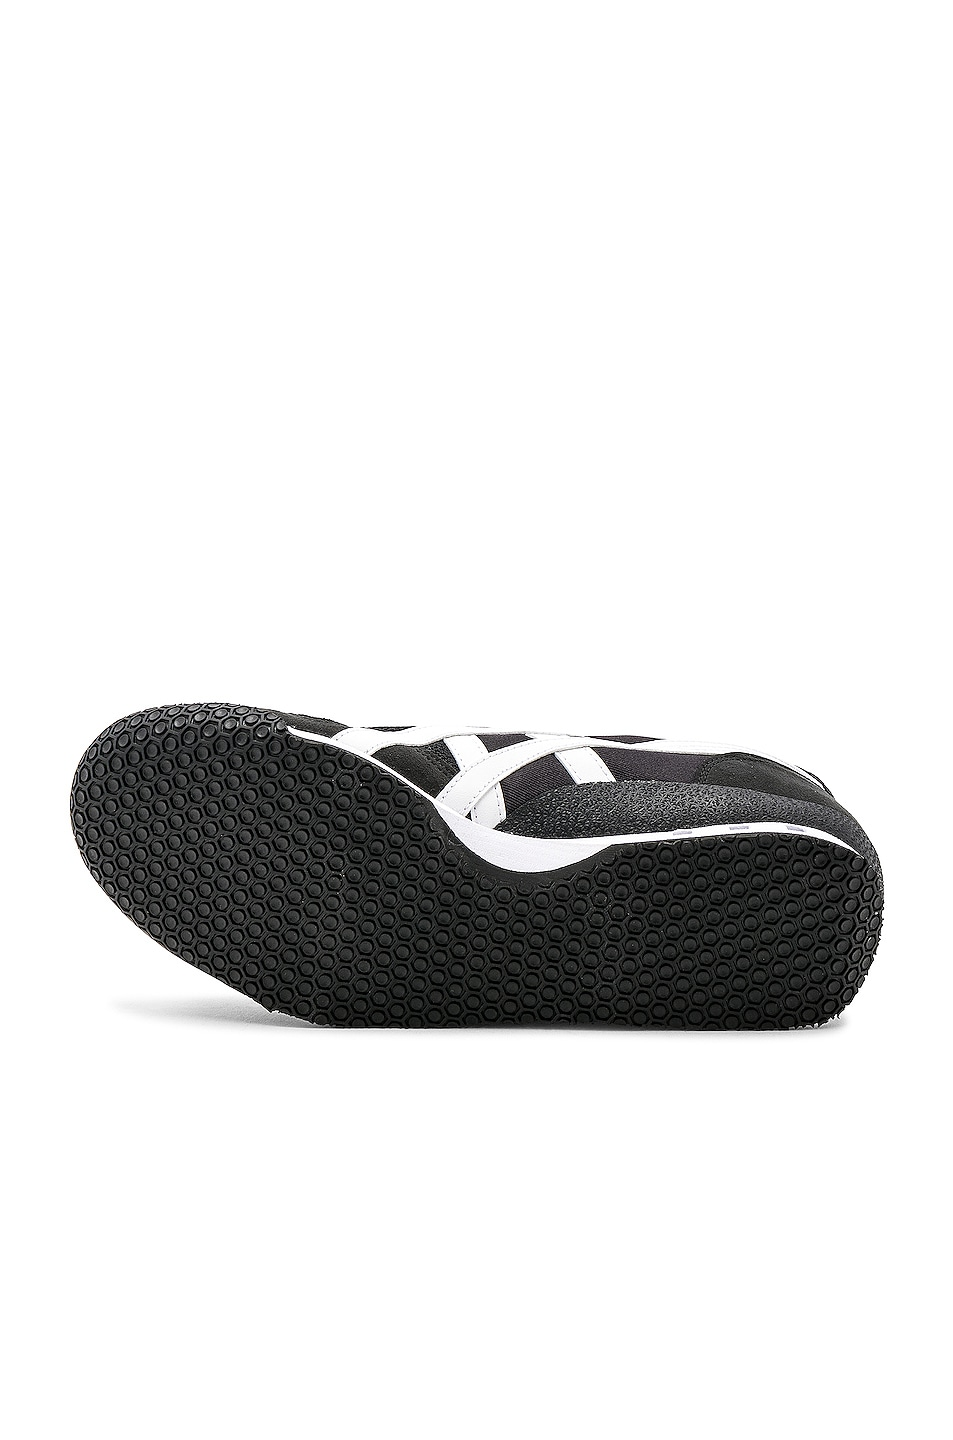 Image 6 of Onitsuka Tiger Ultimate 81 in Black & White